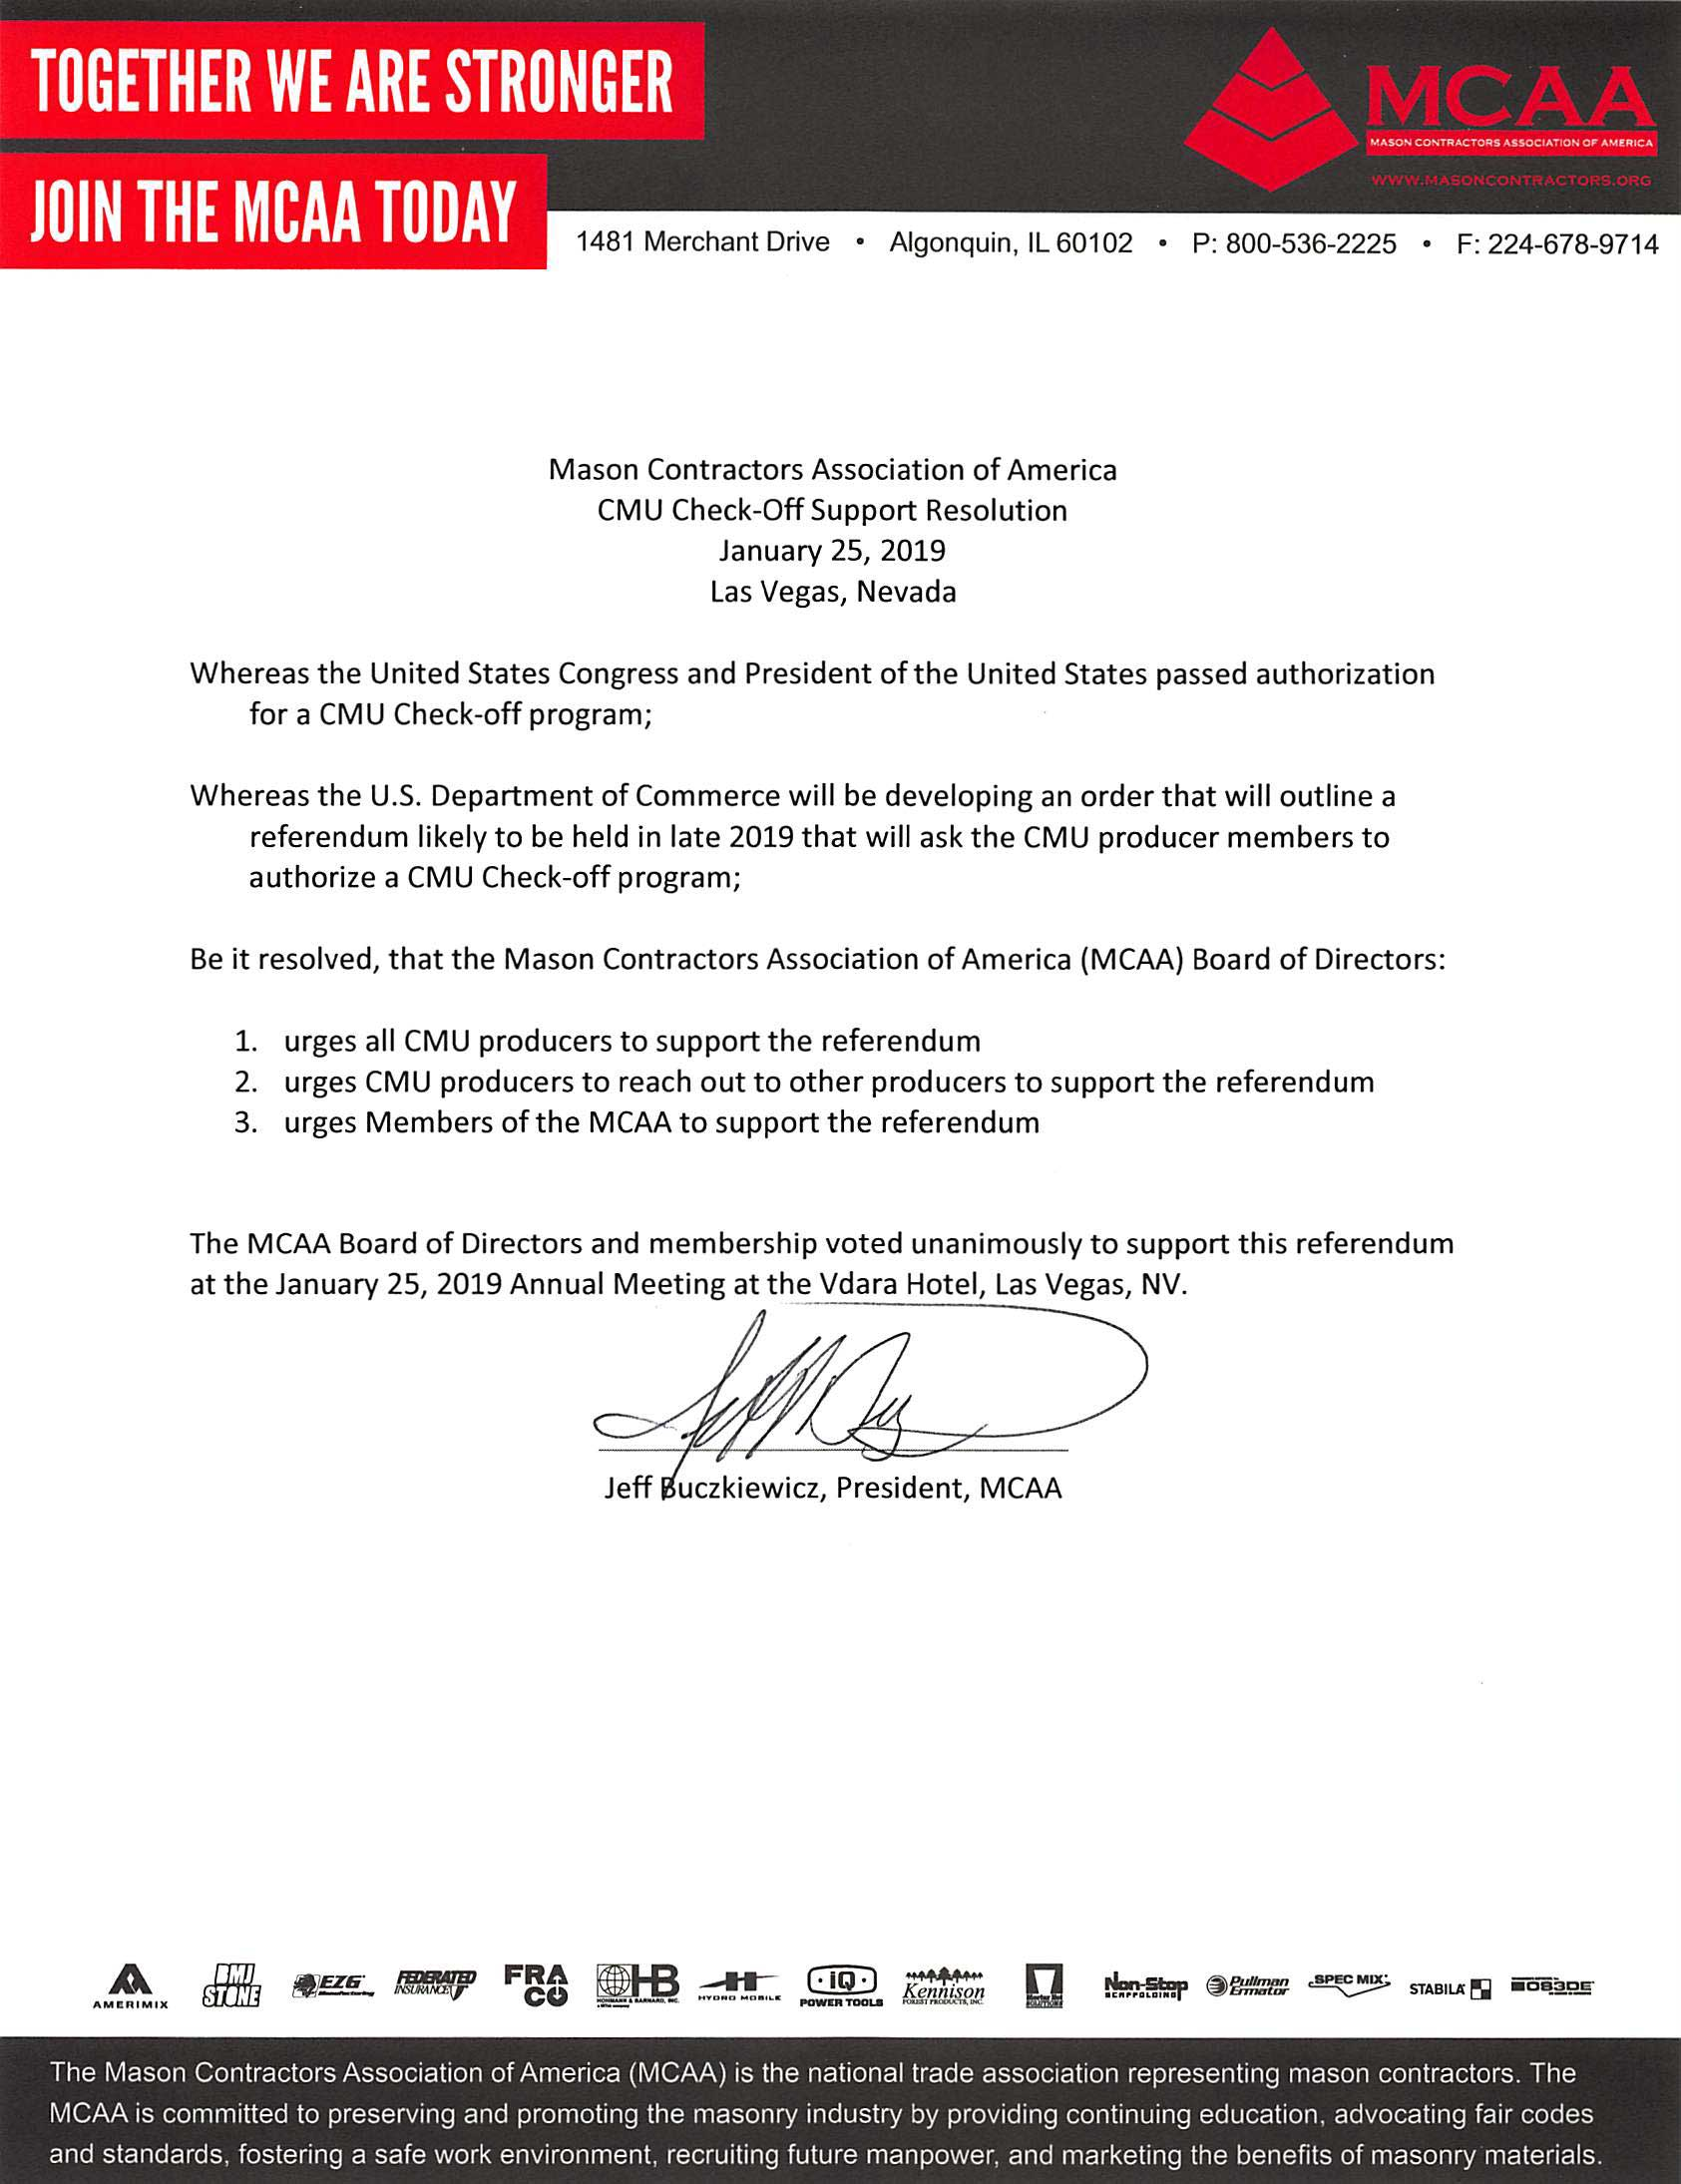 MCAA Resolution